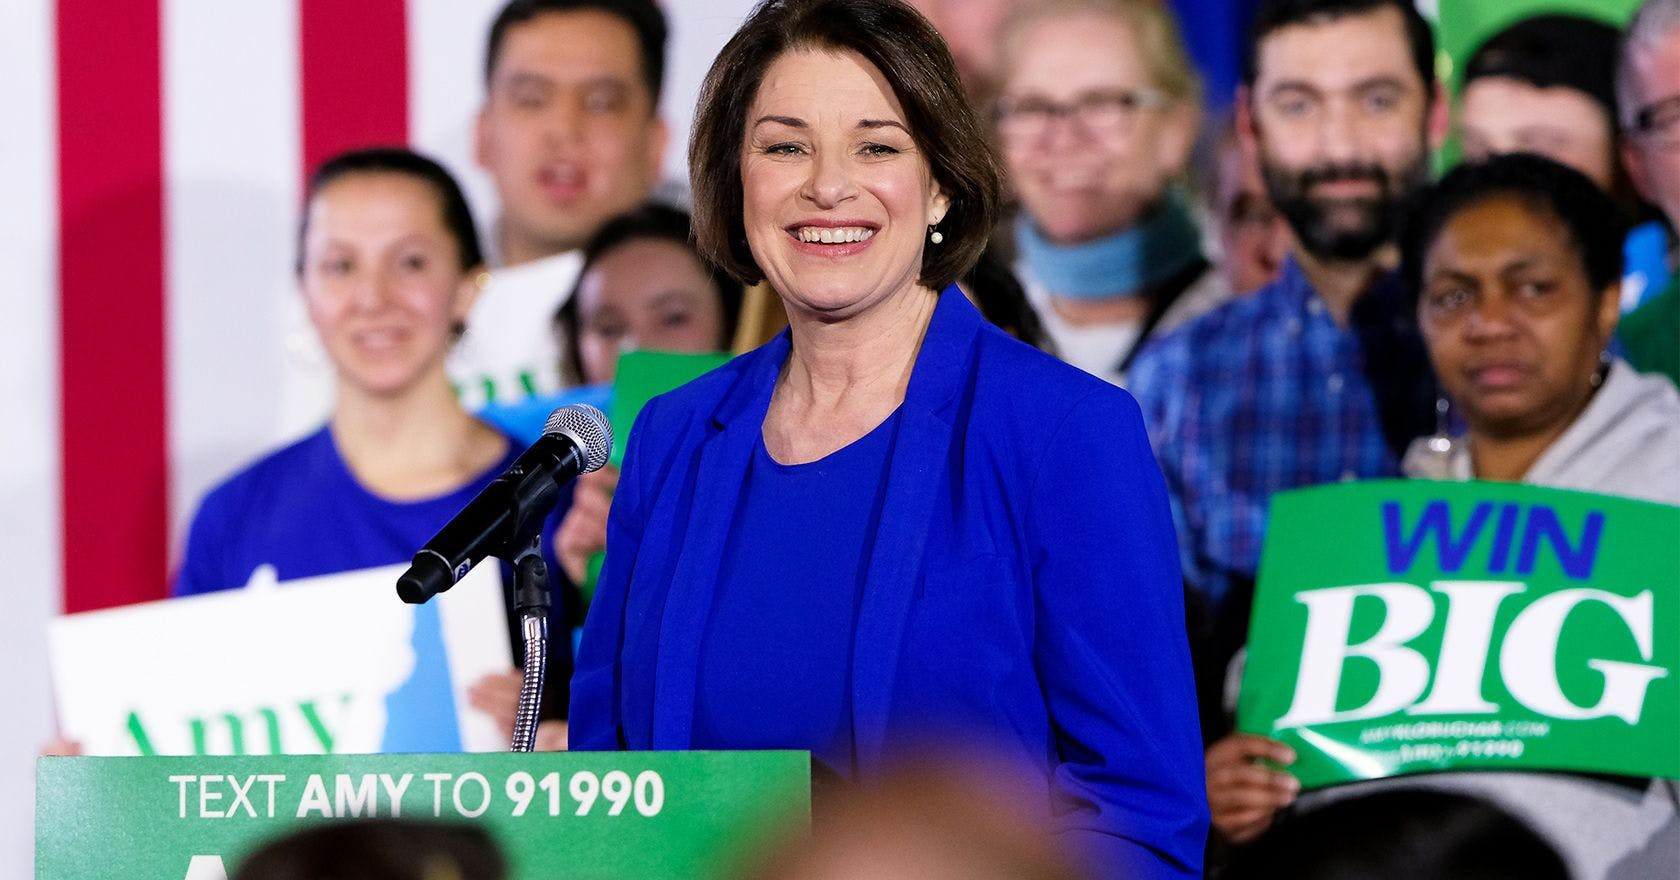 We could still have a female president in 2020, and her name is Amy Klobuchar